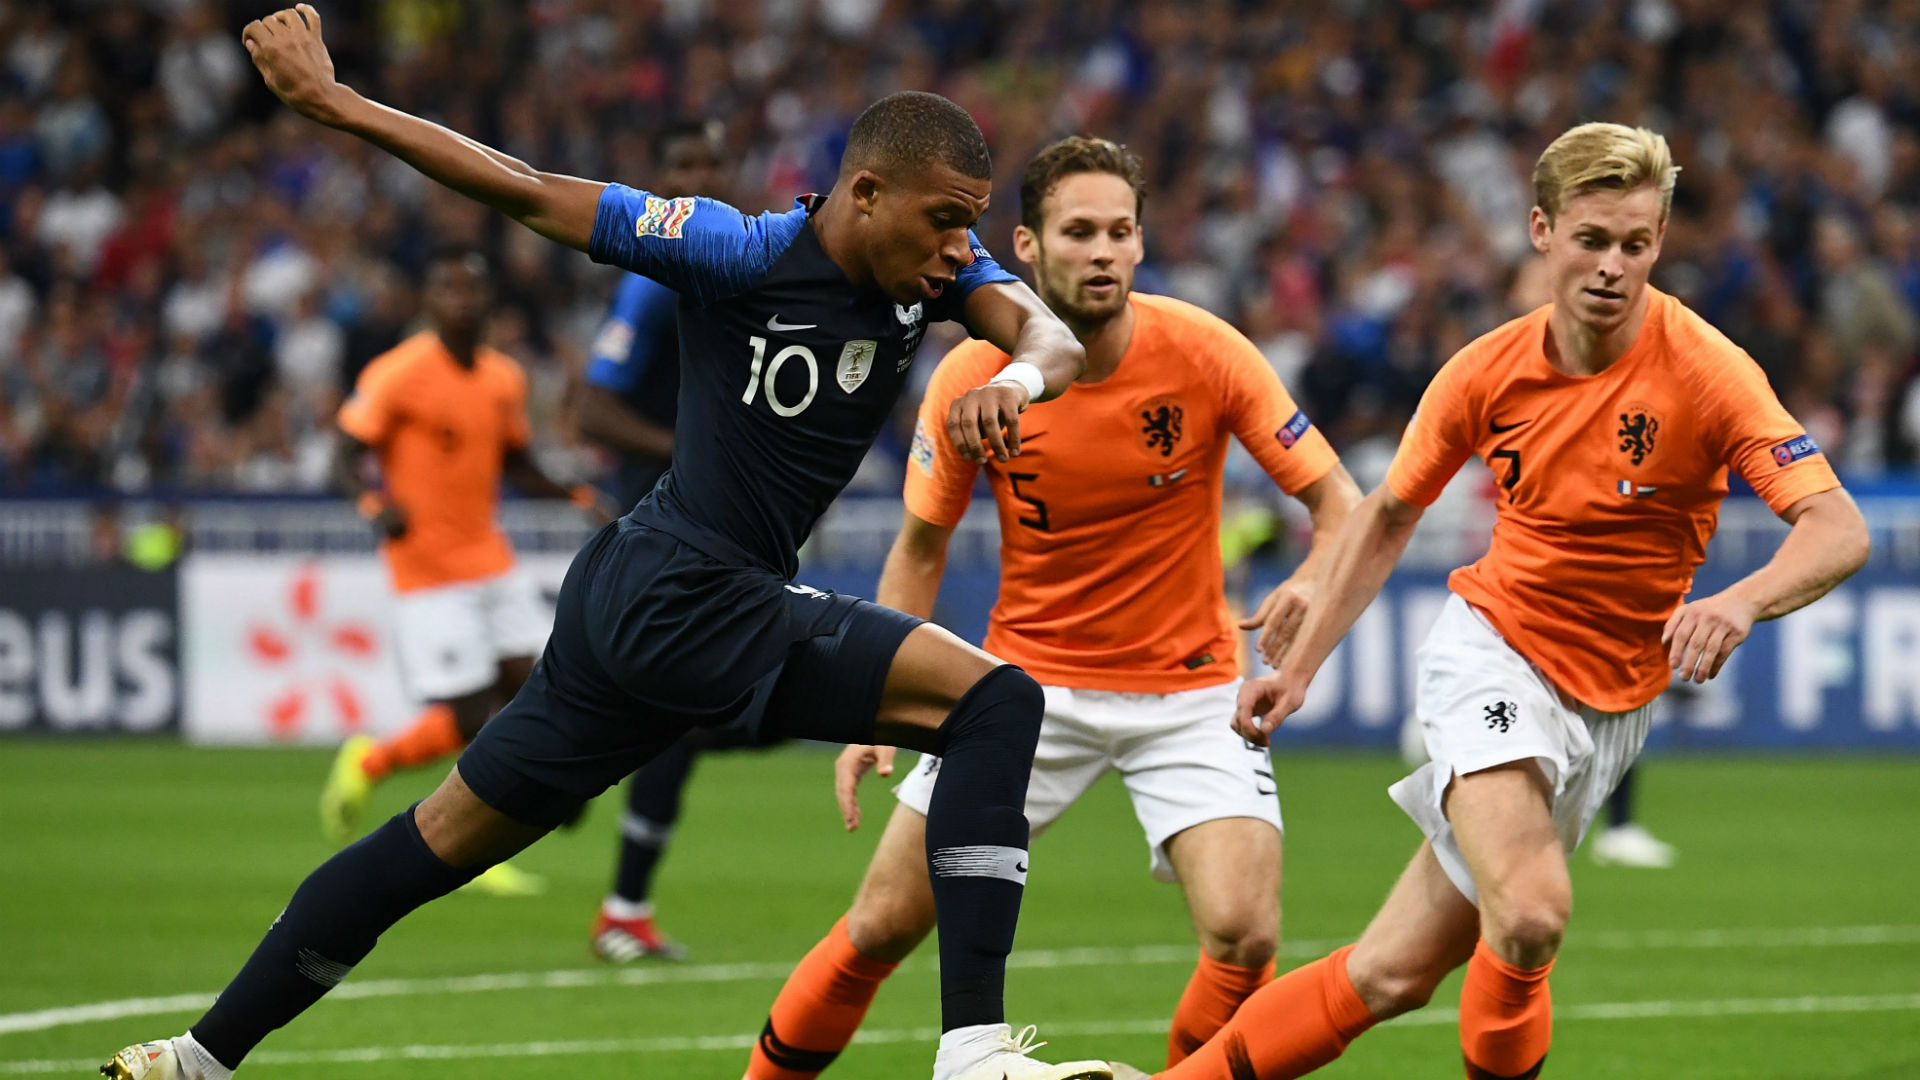 Kylian Mbappe Frenckie De Jong France Netherlands Nations League 09092018